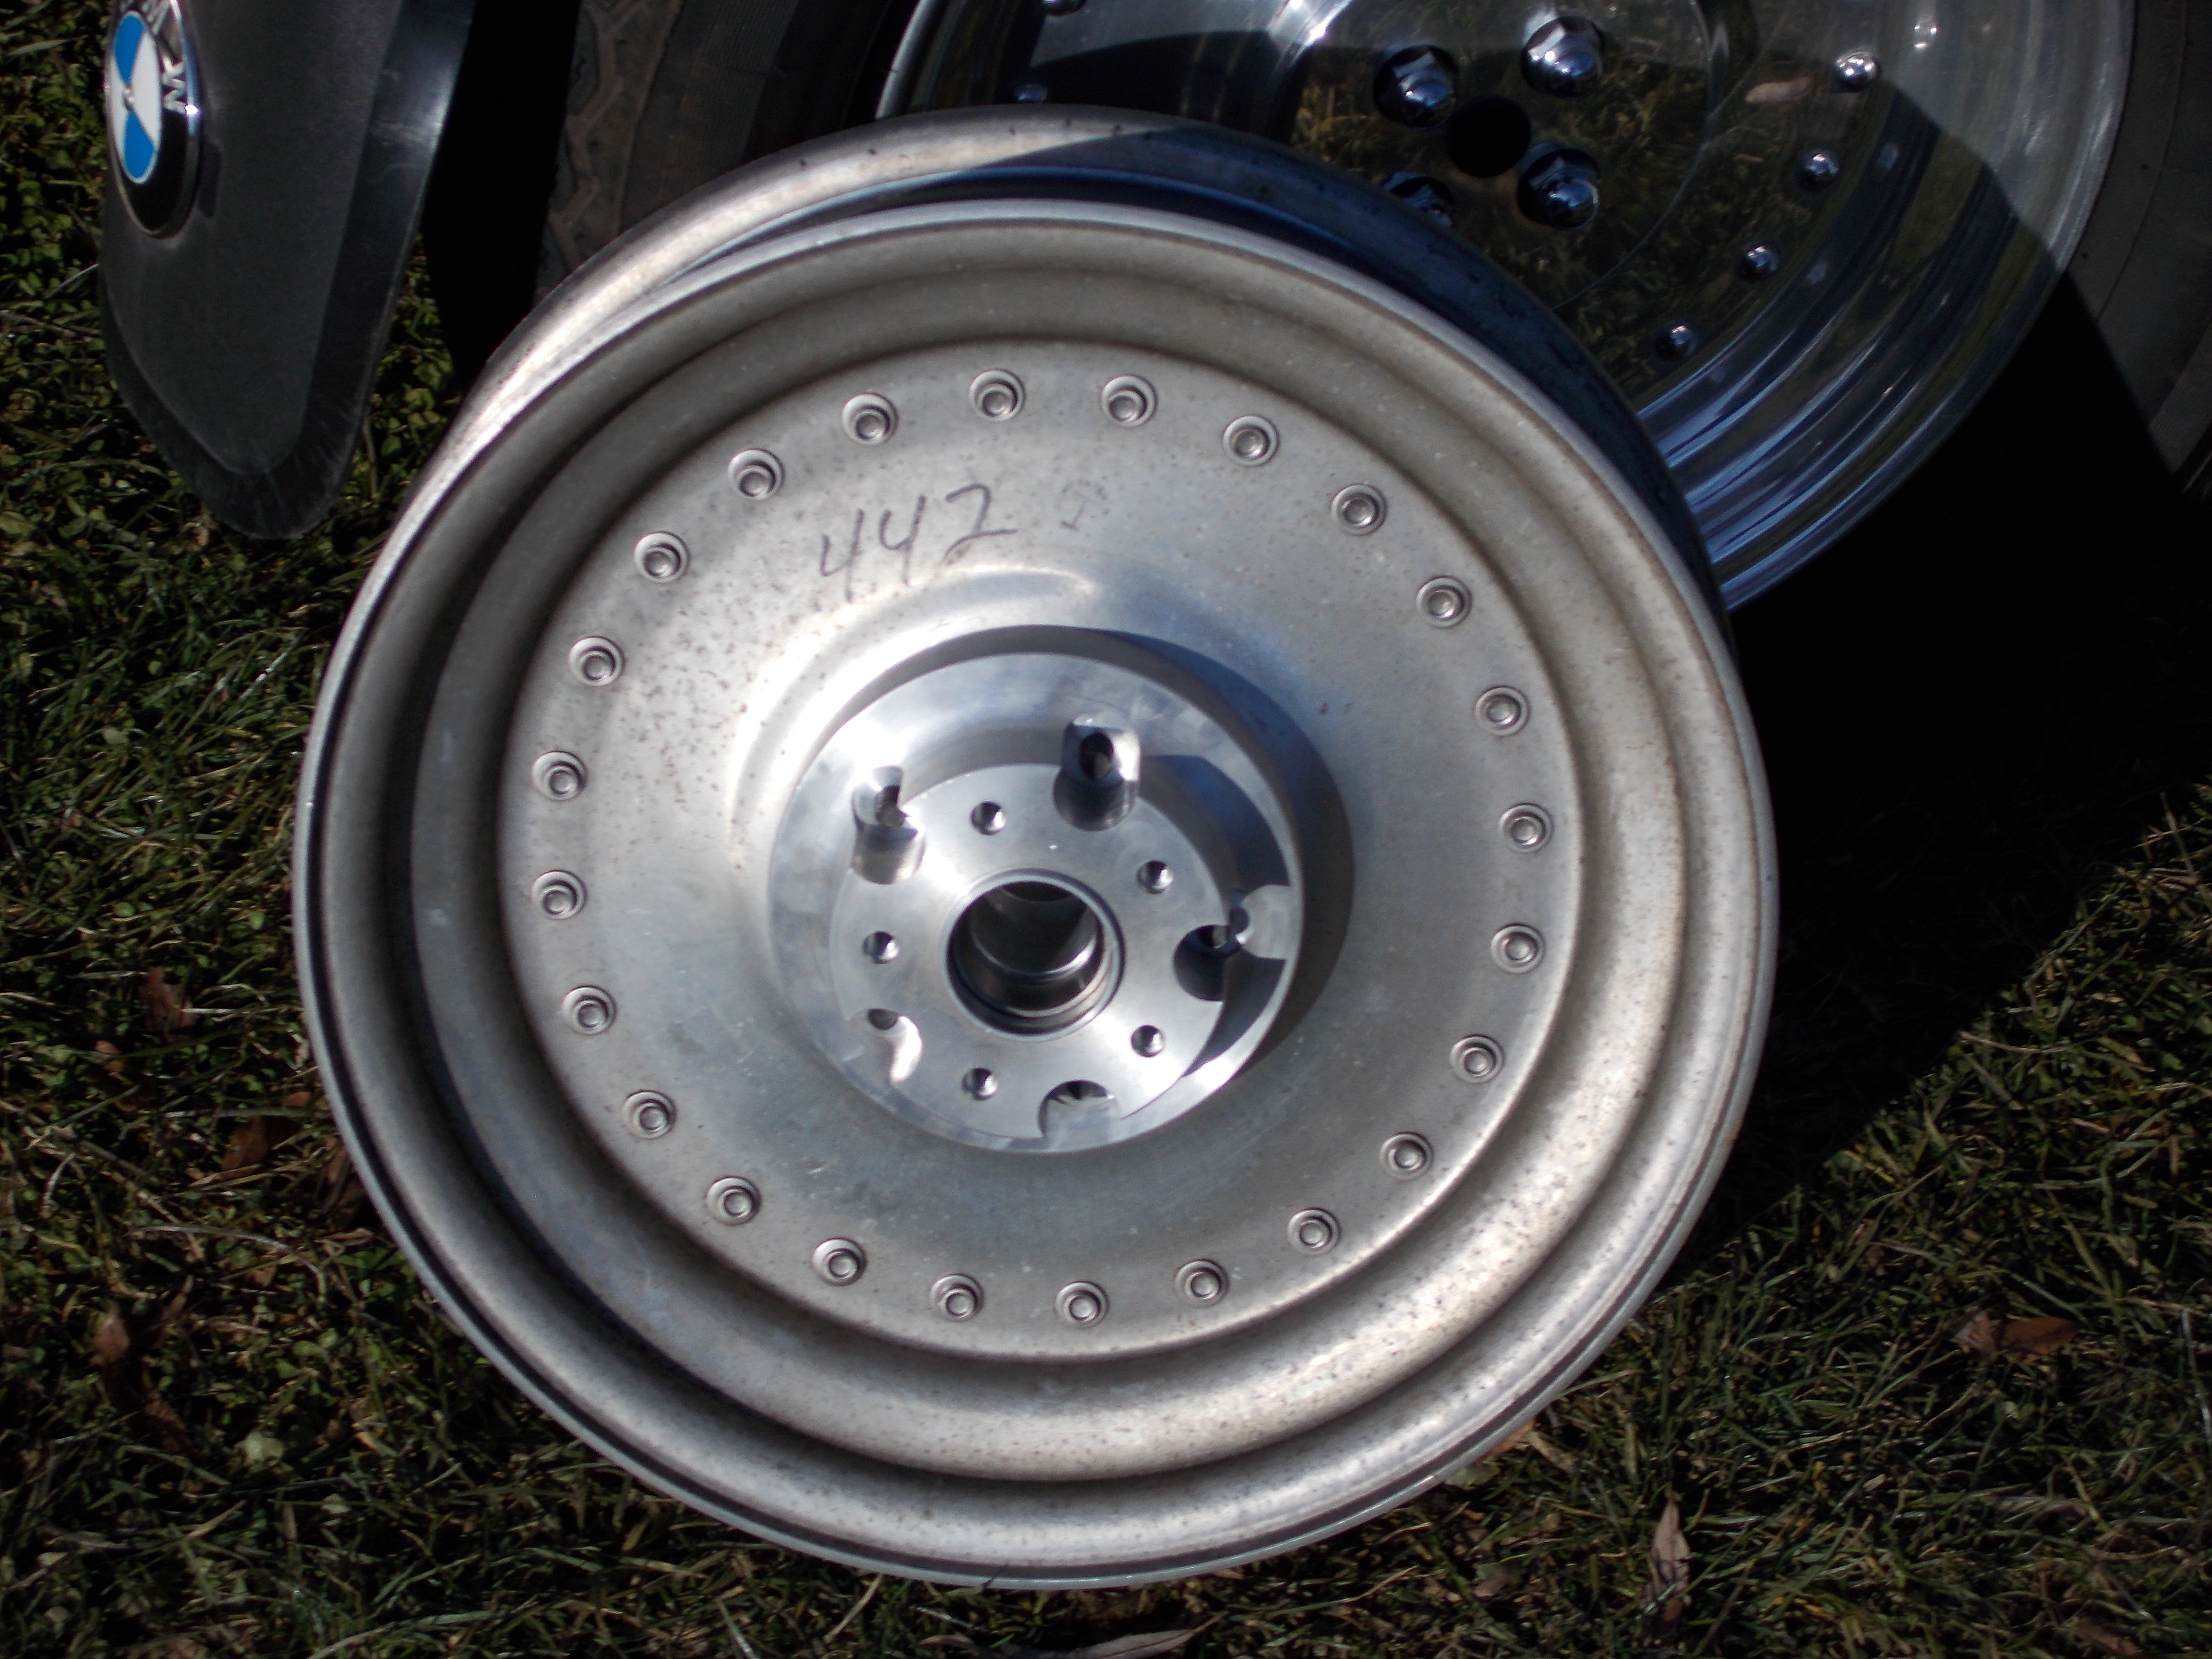 Harley Davidson darkside sidecar wheel